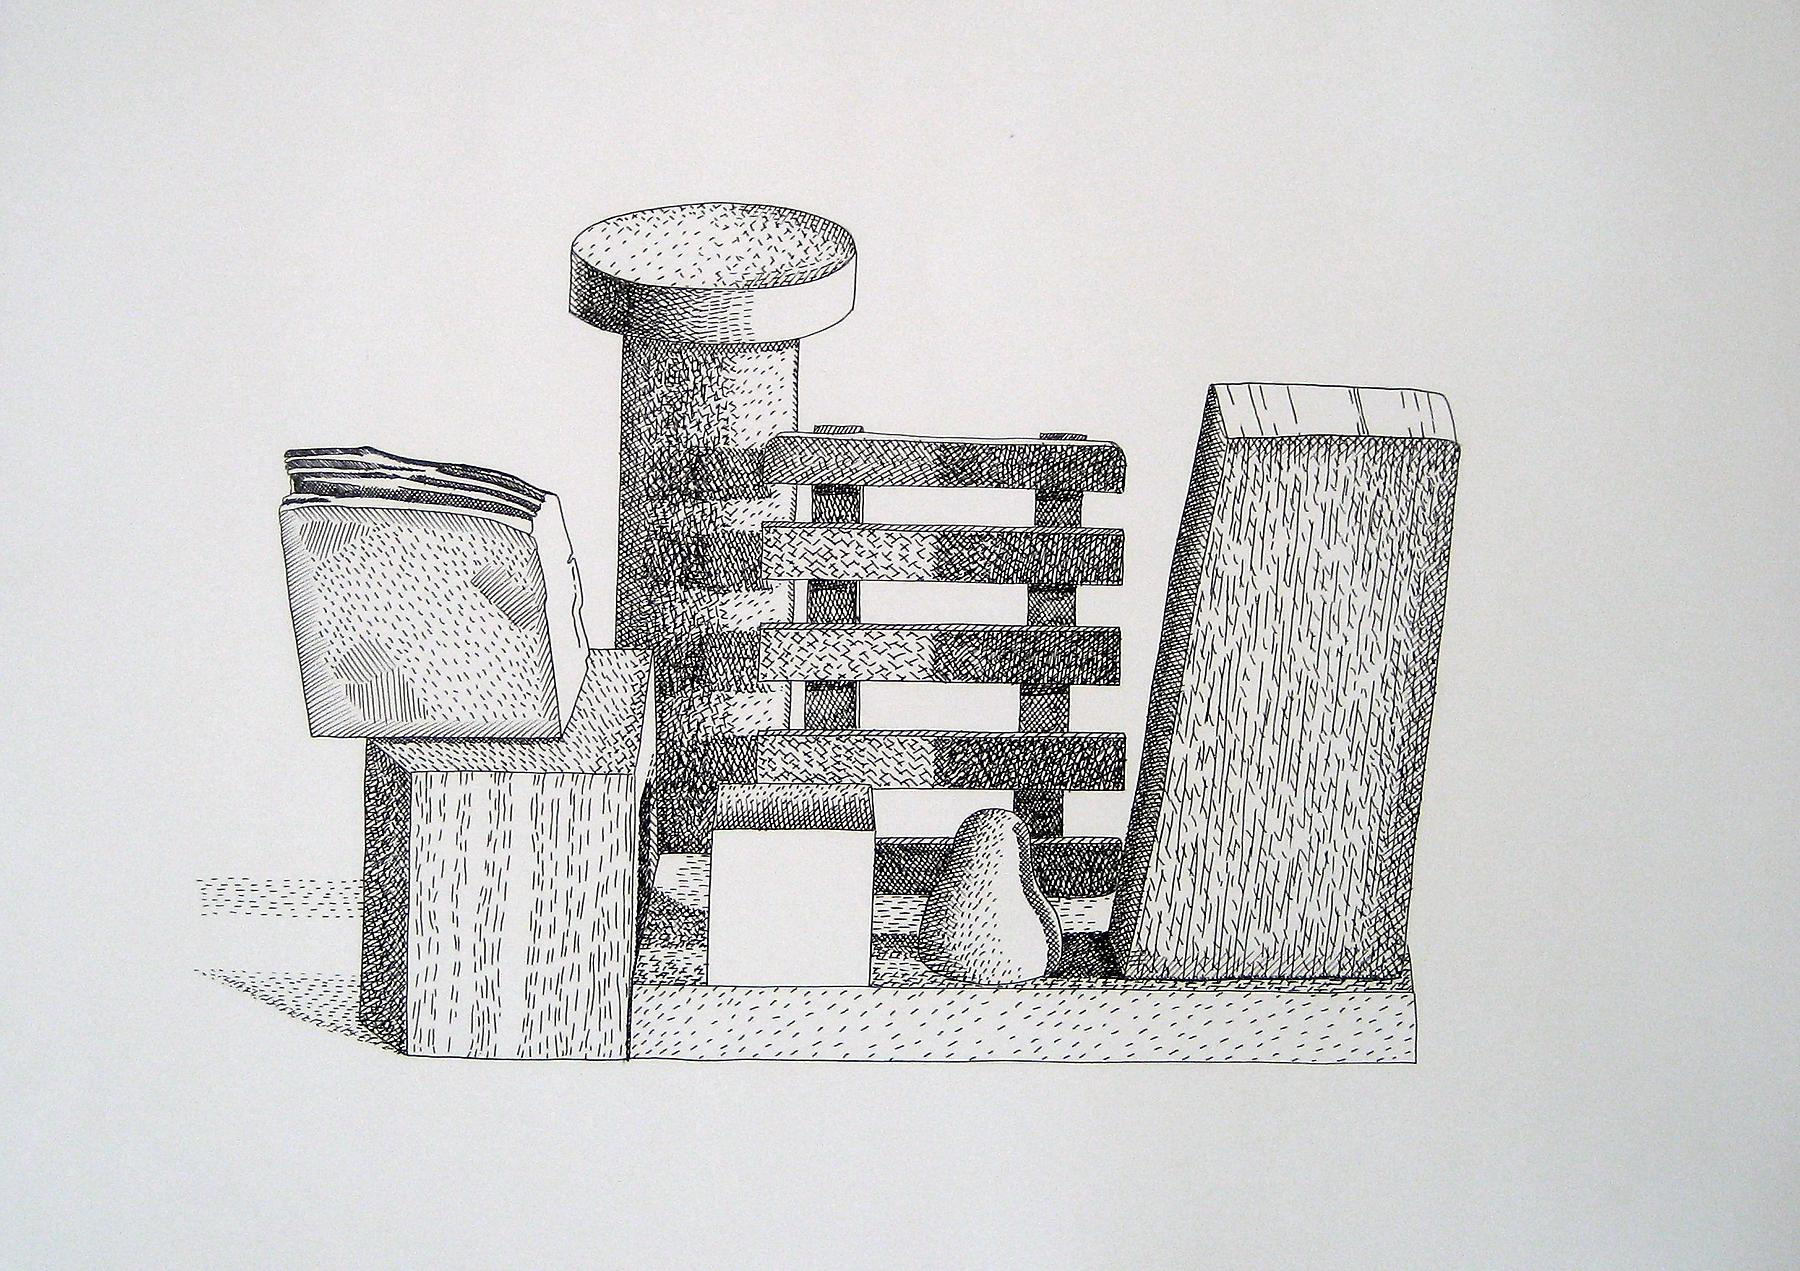 Nathalie Du Pasquier <i>Untitled</i> 2009 Ink pen on paper 19.69 x 27.56 inches